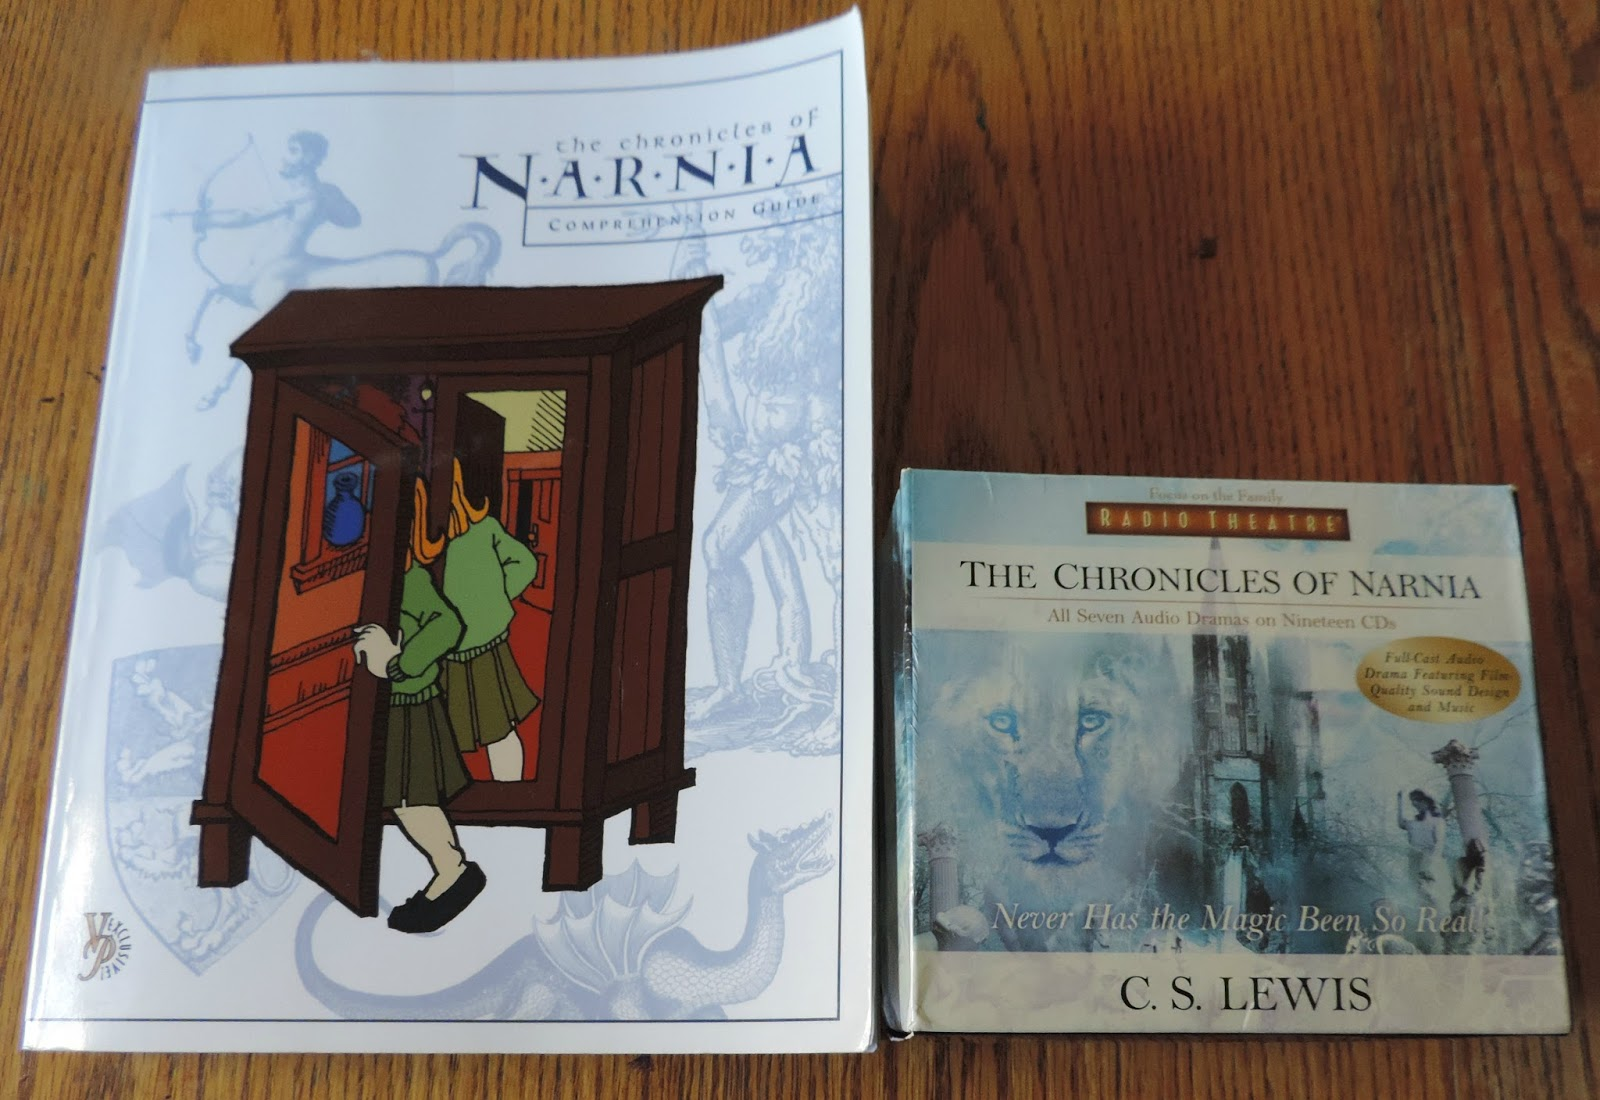 Our spine ~ Focus on the Family Radio Theater, The Chronicles of Narnia and  Veritas Press Comprehension guide